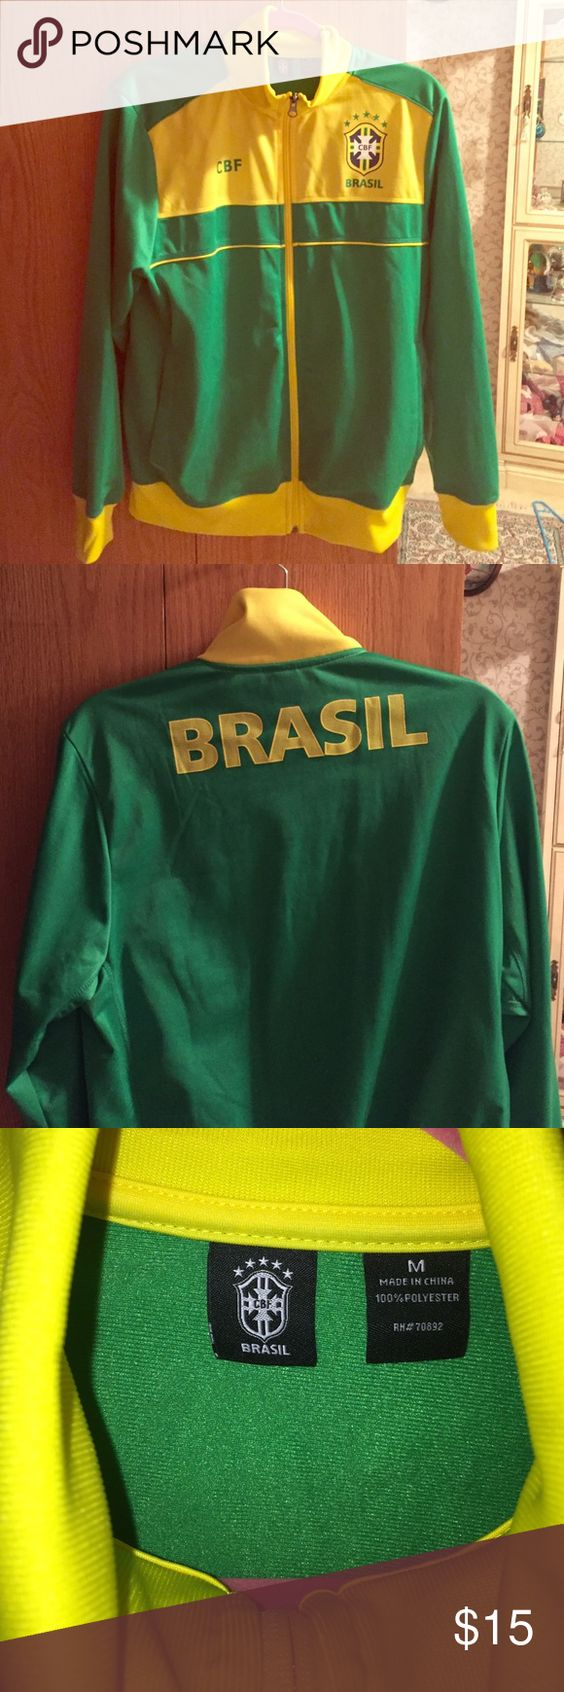 CBF Brasil Jacket Worn once, in perfect condition Jackets & Coats Lightweight & Shirt Jackets